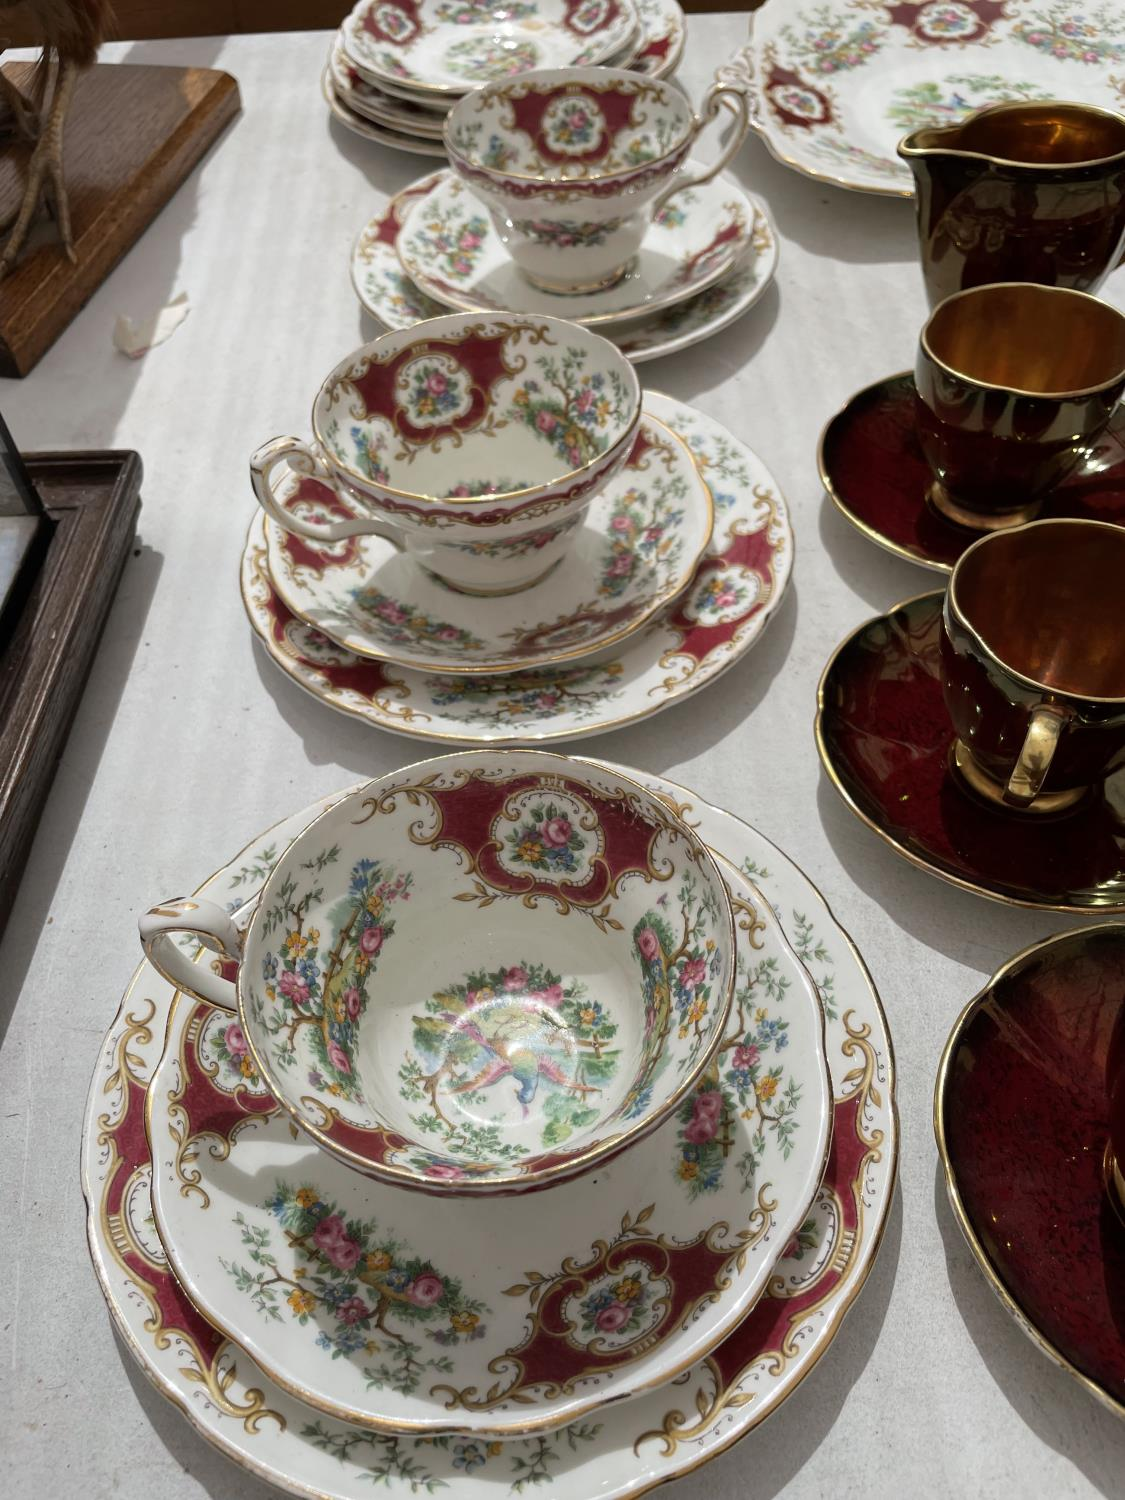 AN ASSORTMENT OF CERAMIC WARE TO INCLUDE A CARLTON WARE COFFEE SERVICE SET AND FLORAL TRIOS ETC - Image 8 of 10